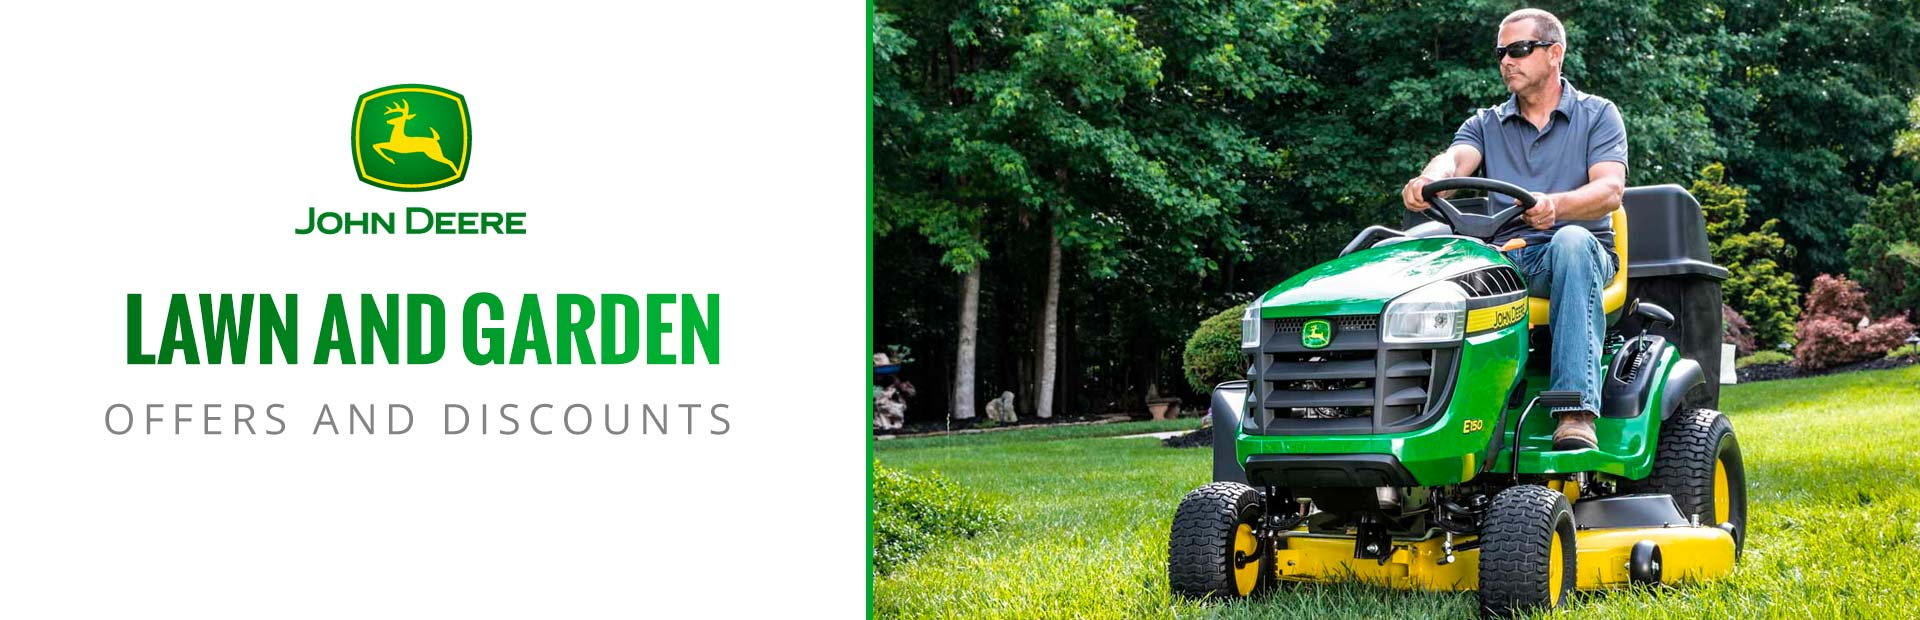 John Deere: Lawn and Garden Offers and Discounts